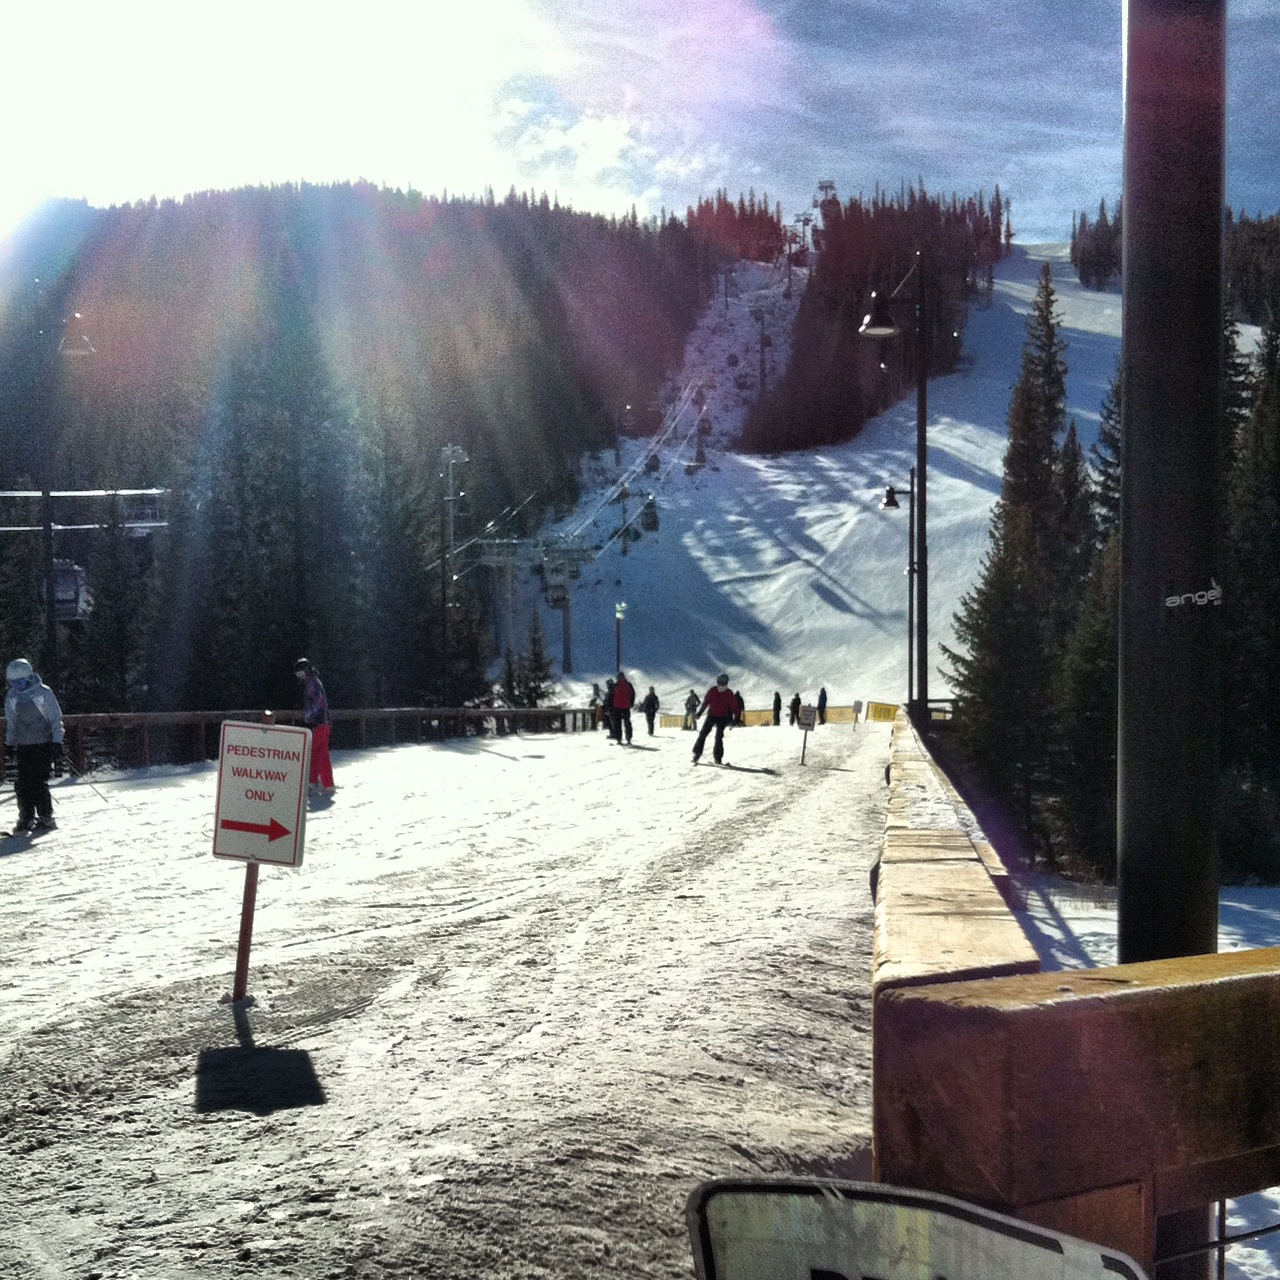 Snowboard day number one in Keystone,CO